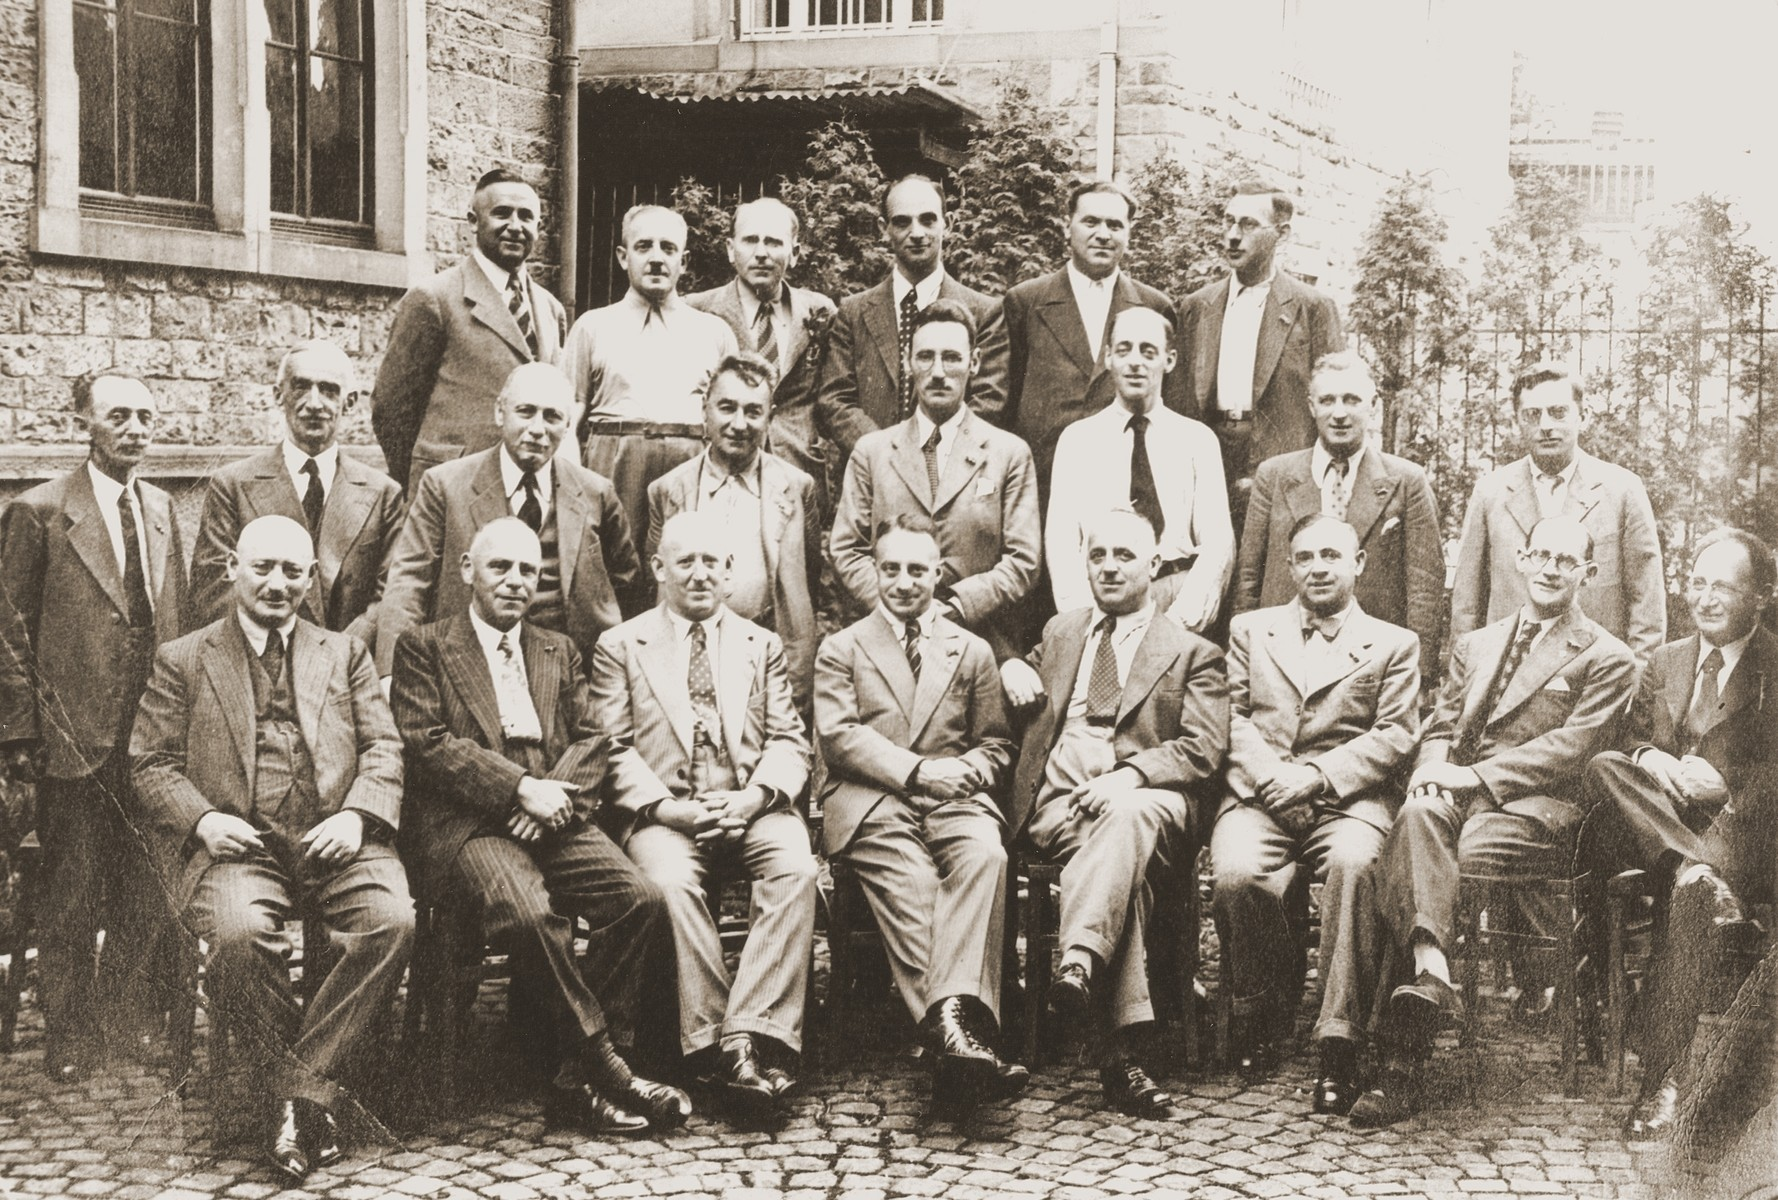 Group portrait of twenty-two members of the congregation of the liberal Zerrennerstrasse synagogue.    Only ten of these men are known to have survived, most by emigration.  Pictured in the first row, left to right: Jakob Bensinger, Leo Erlanger, Salomon Bensinger, Adolf Weill, Leopold Blum, Max Hichberger, Max Lieben, and Alexander Levisohn.  Second row, left to right: Nathan Heitlinger, David Peritz, Helmut Wolff, Alfred Landau, Prof. Dr. Simon Bloch, Prof. Dr. Ascher Fritzmartin, Walter Wolff, and Fritz Gottschalk.  Third row, left to right:  Philipp Braun, Emil Simon, [?] Dreyfus, Leopold Blum, Leo Klein, and David Levy.